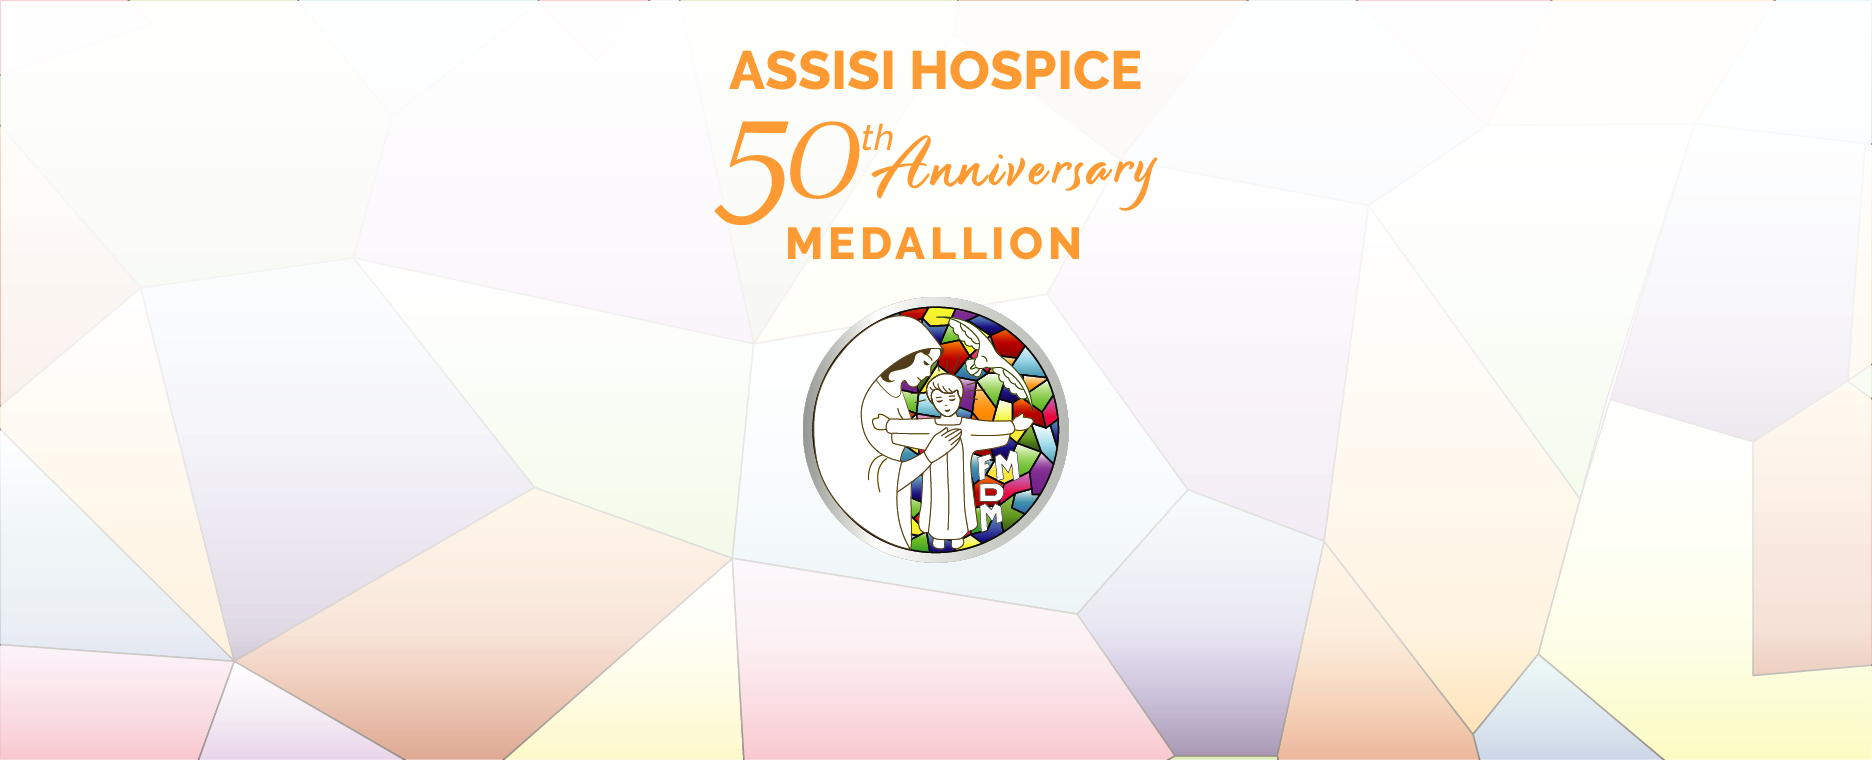 Assisi's 50th Anniversary Medallion